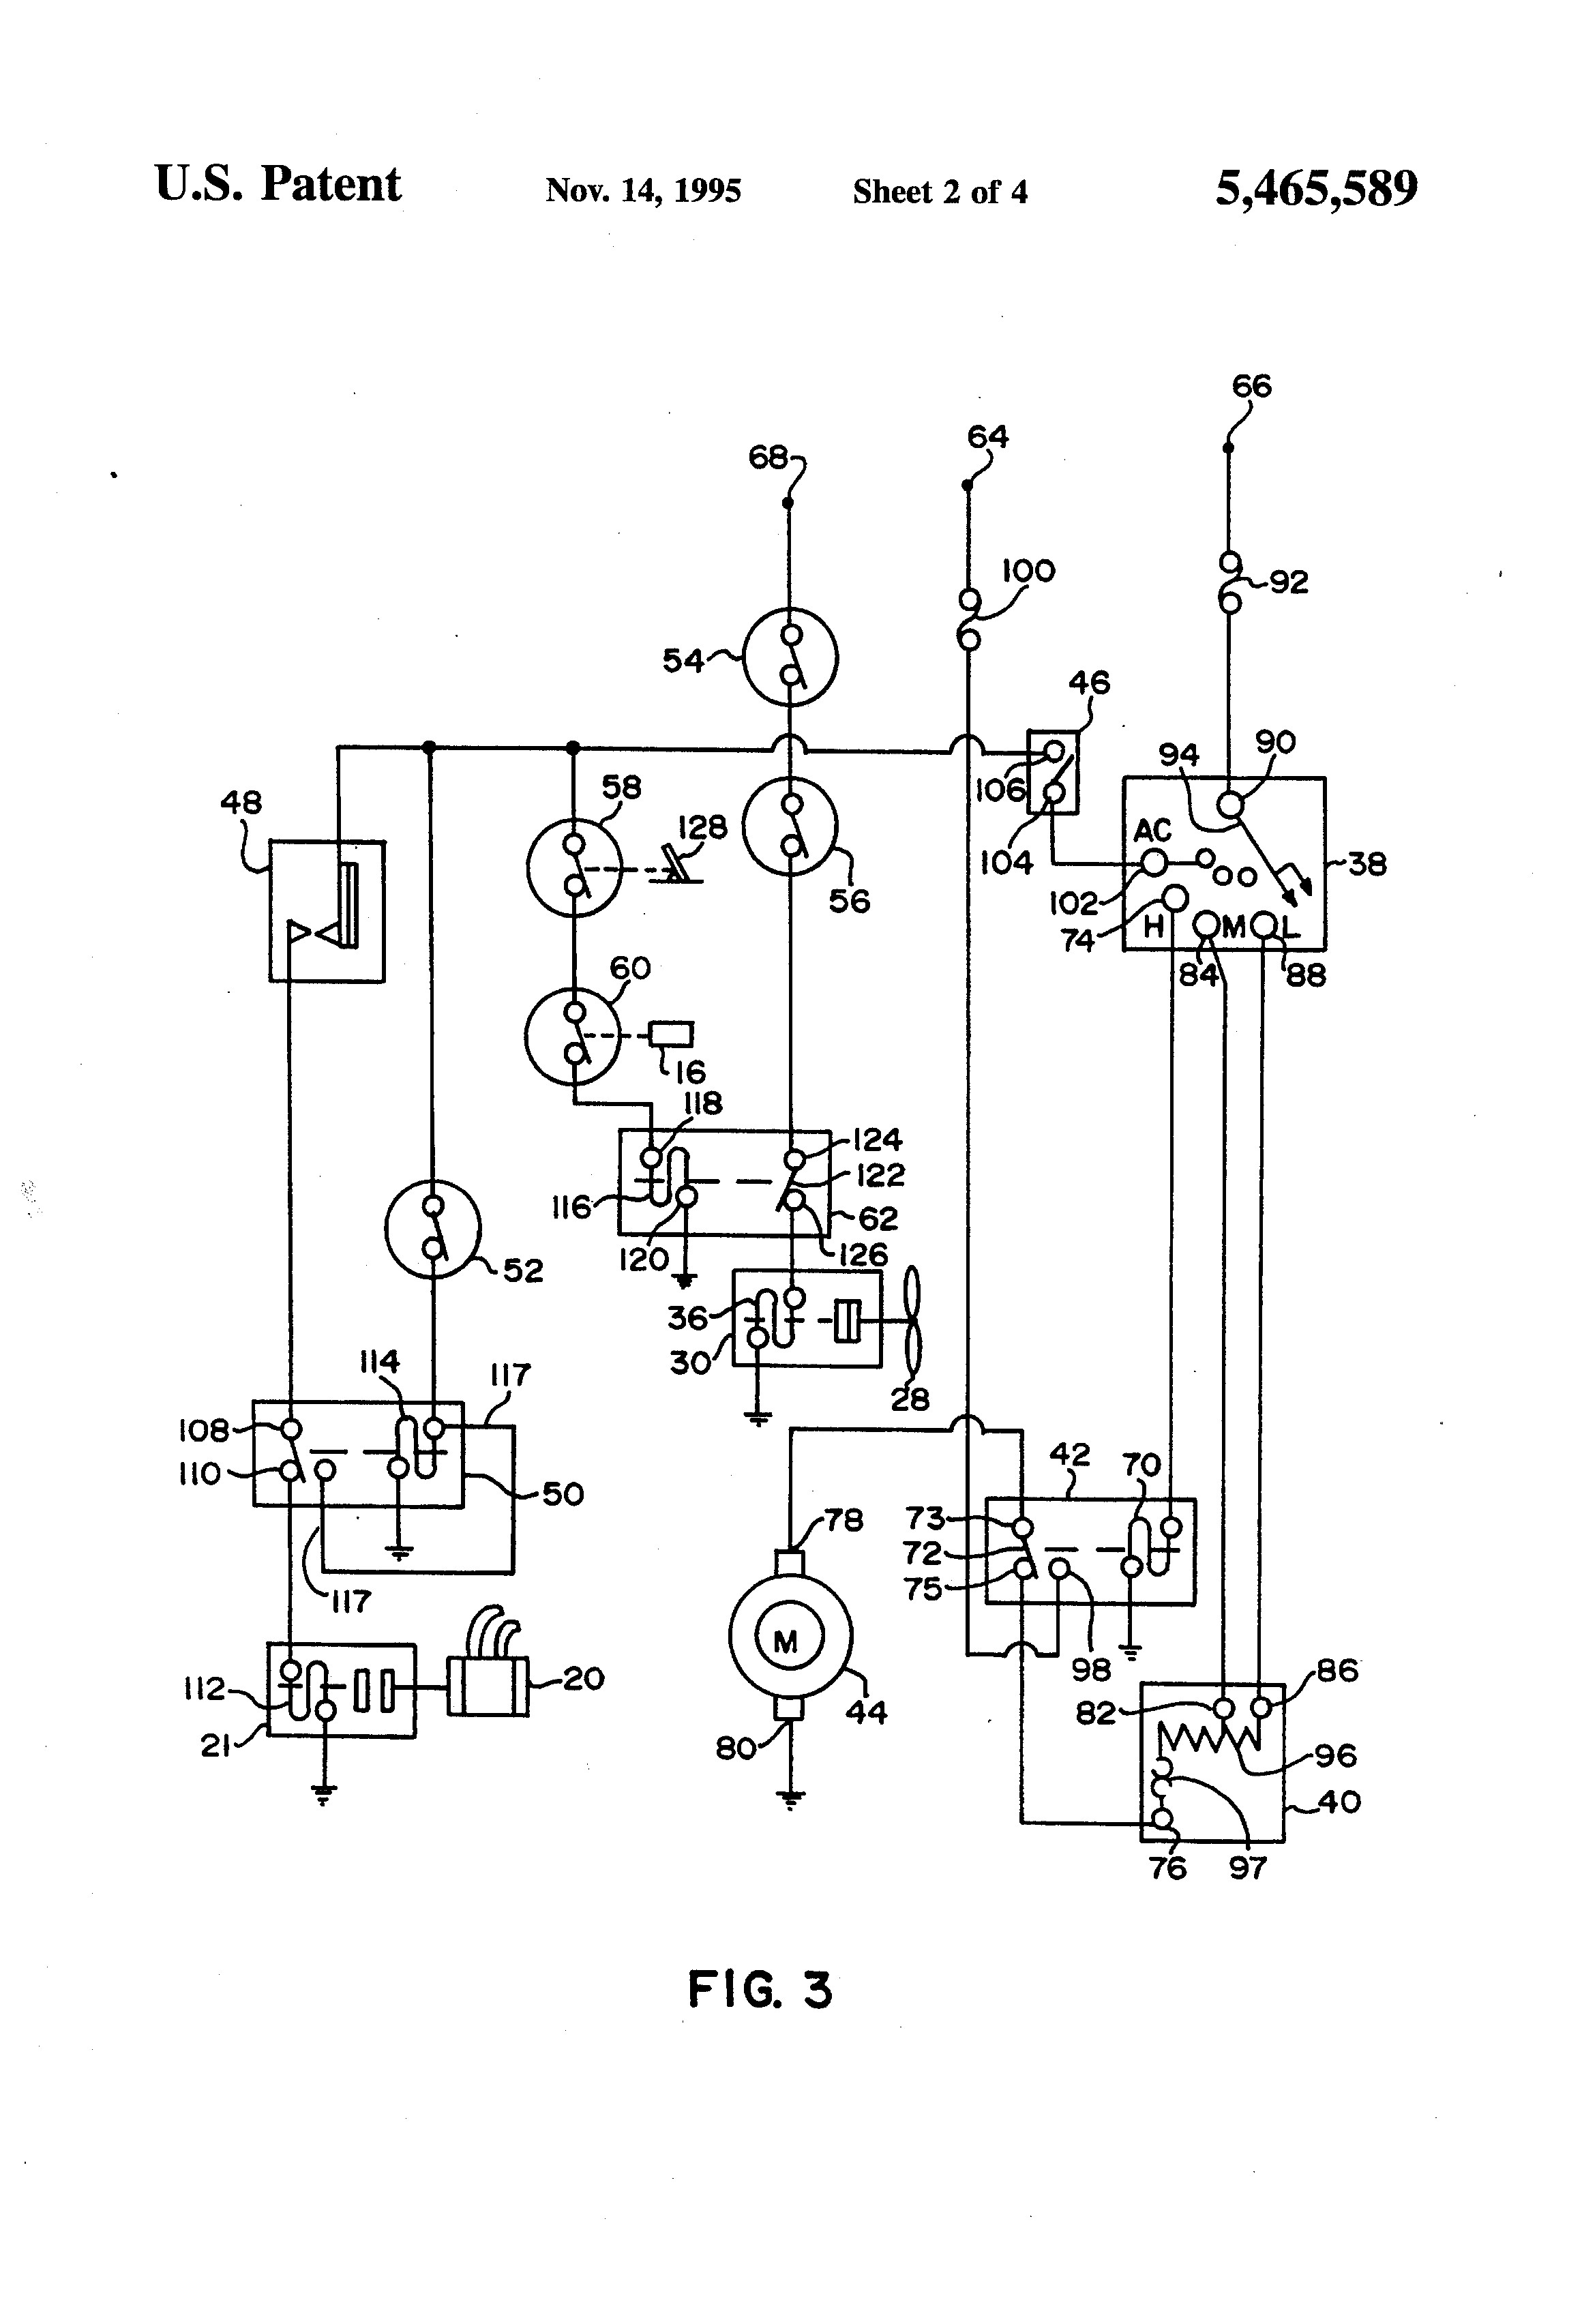 [DIAGRAM] 1999 International 4900 Starter Wiring Diagram